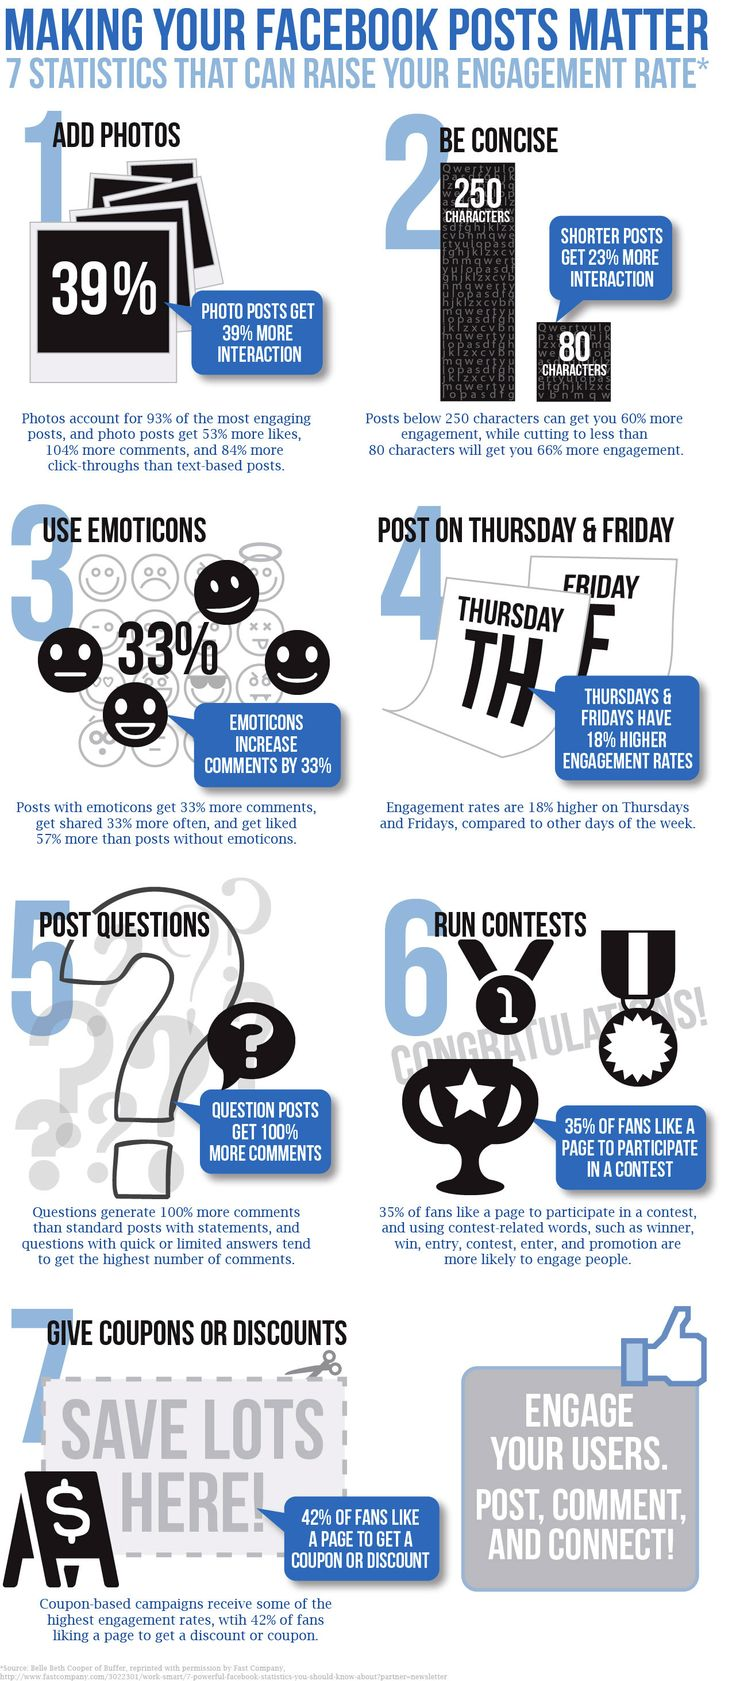 7 Statistics That Can Raise Your Facebook Engagement (Infographic)